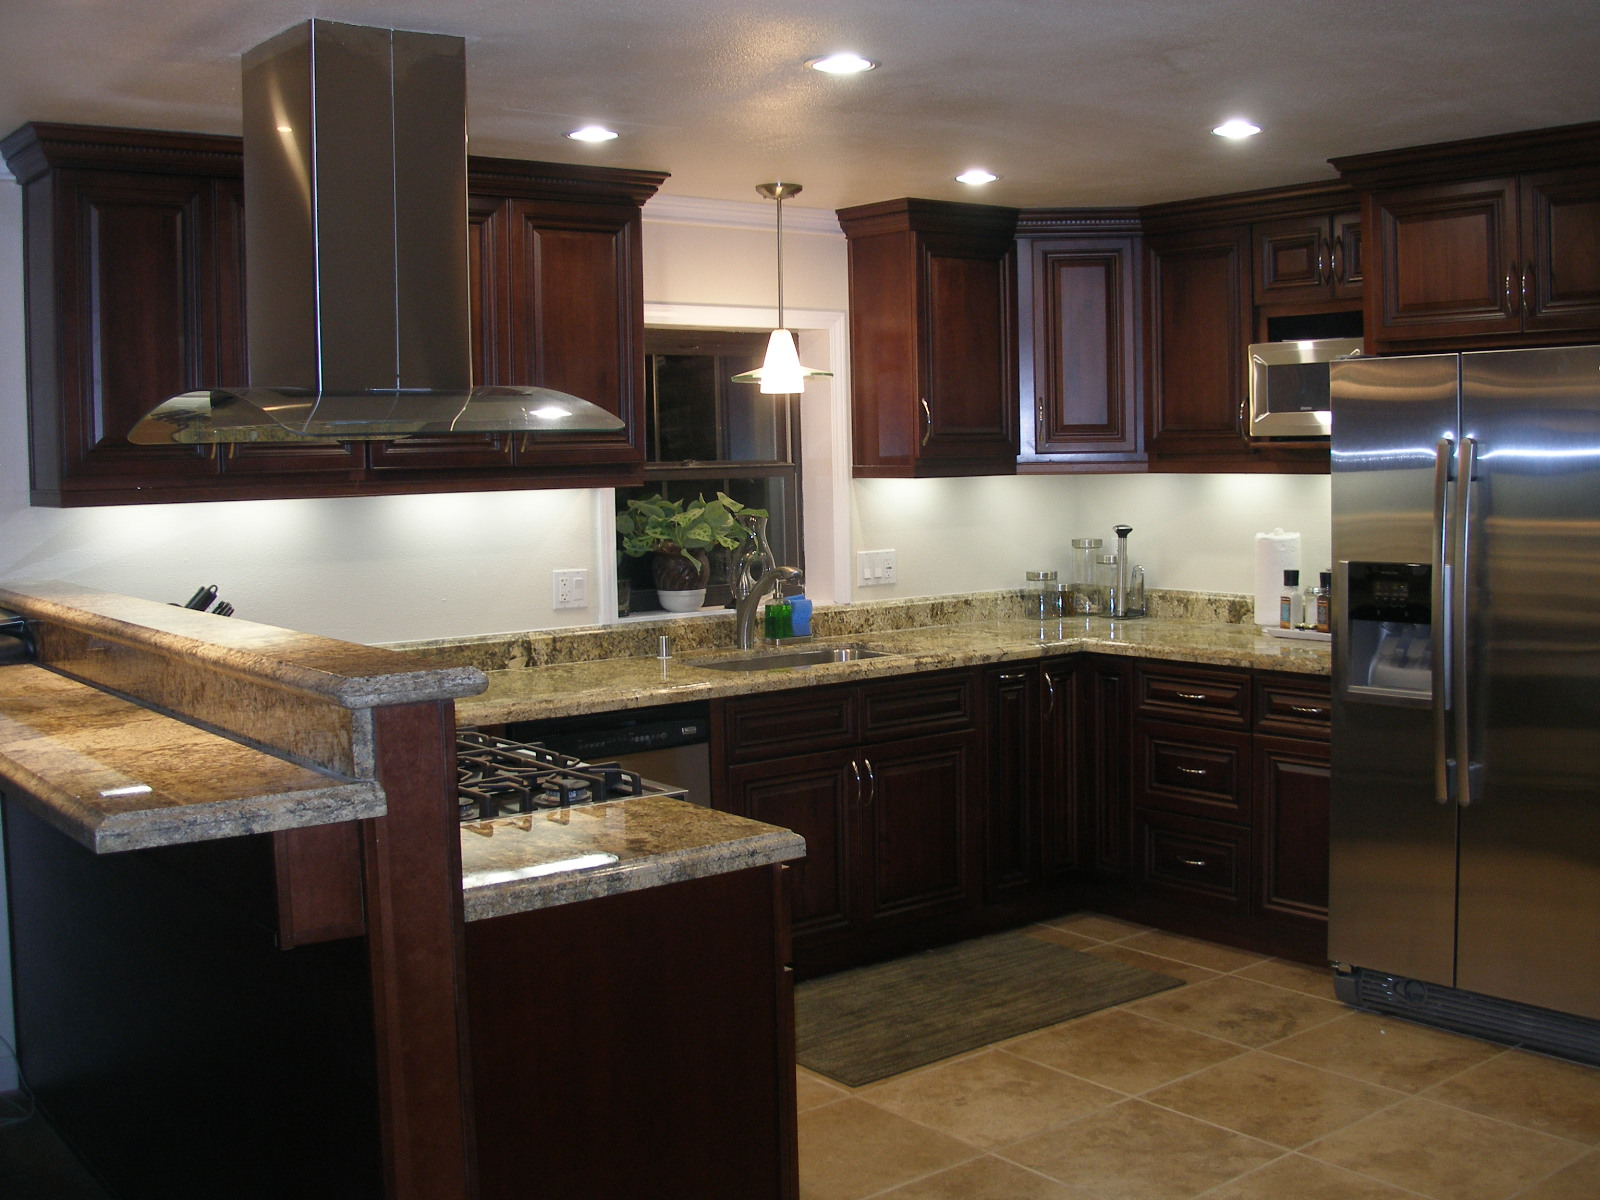 Kitchen remodeling brad t jones construction for Kitchen ideas remodel